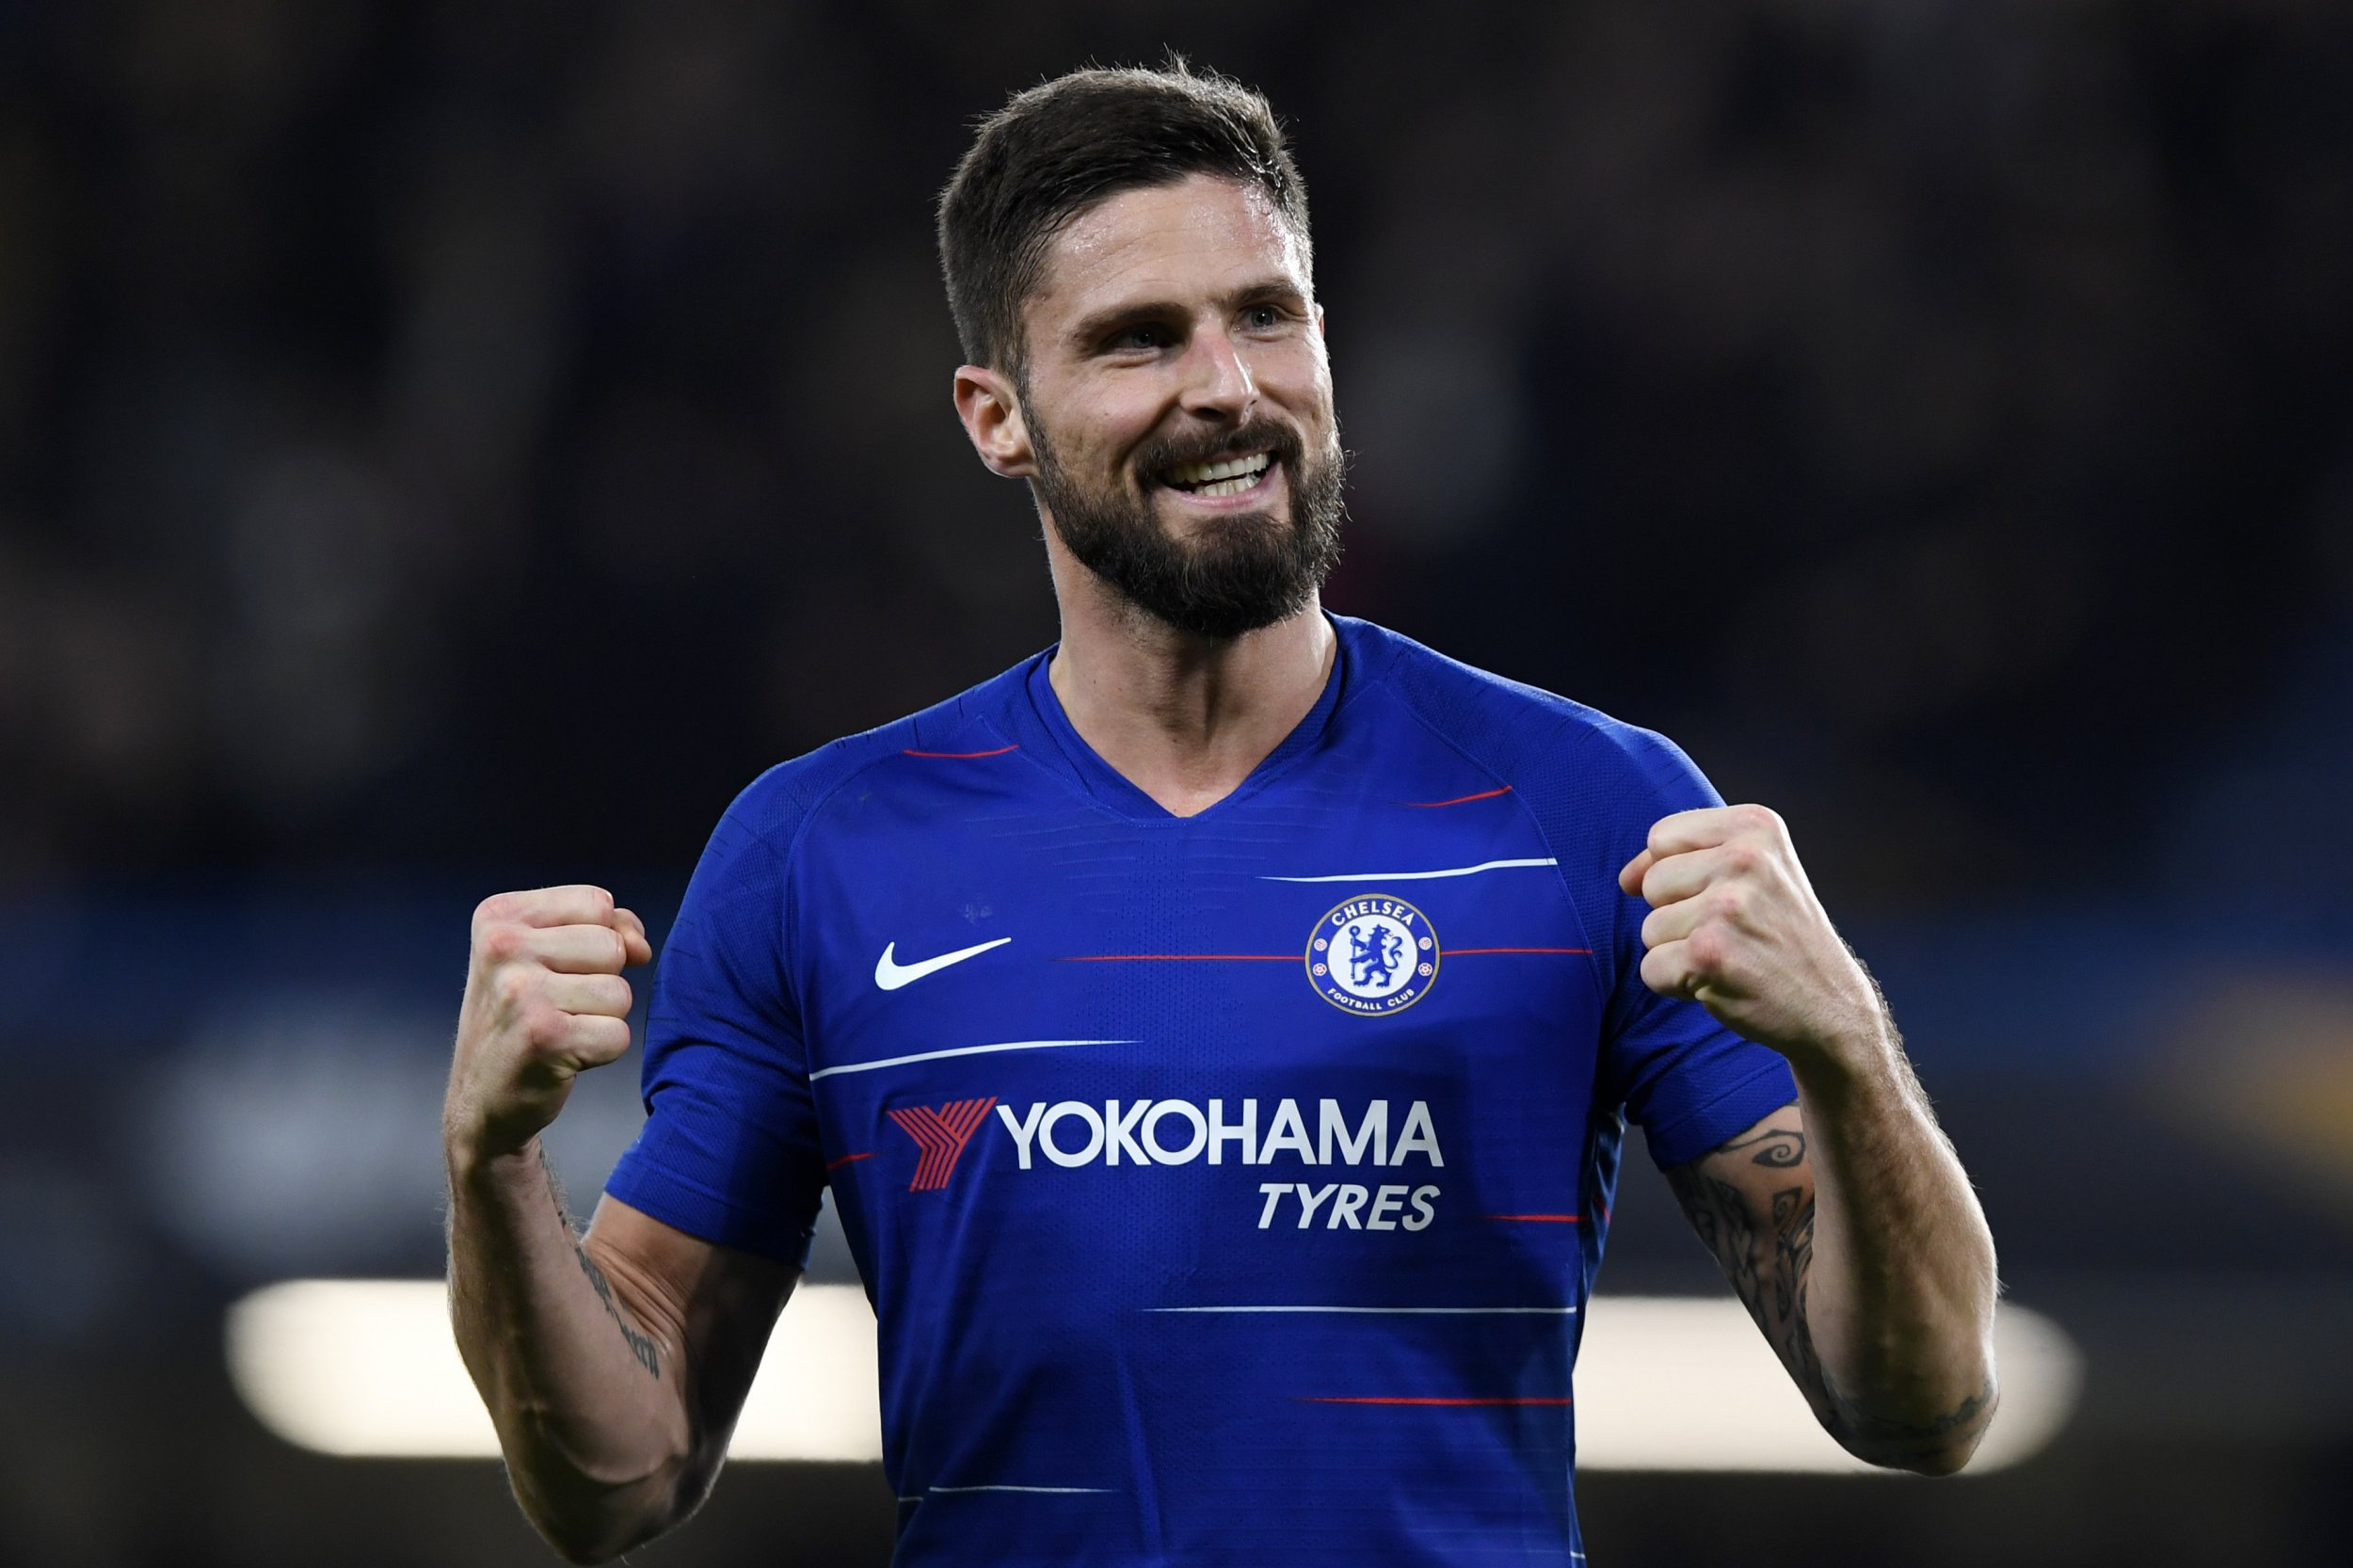 epa07198255 Chelsea's Olivier Giroud celebrates after scoring against PAOK during their UEFA Europa League Group L soccer match between Chelsea and PAOK in Stamford Bridge, London, Britain, 29 November 2018. EPA/WILL OLIVER